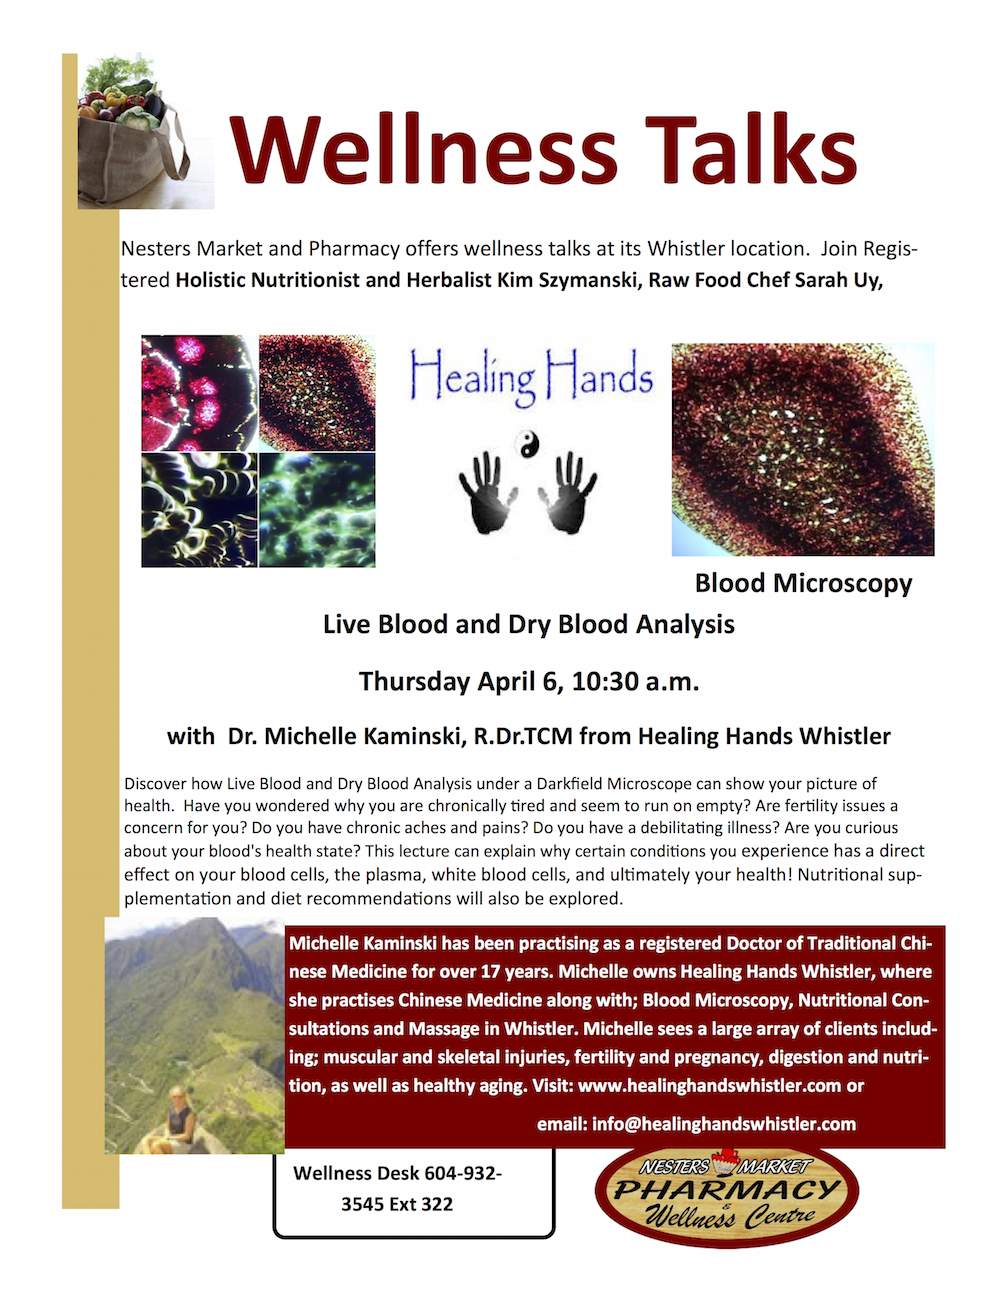 Wellness Talks at Nesters on Blood Analysis